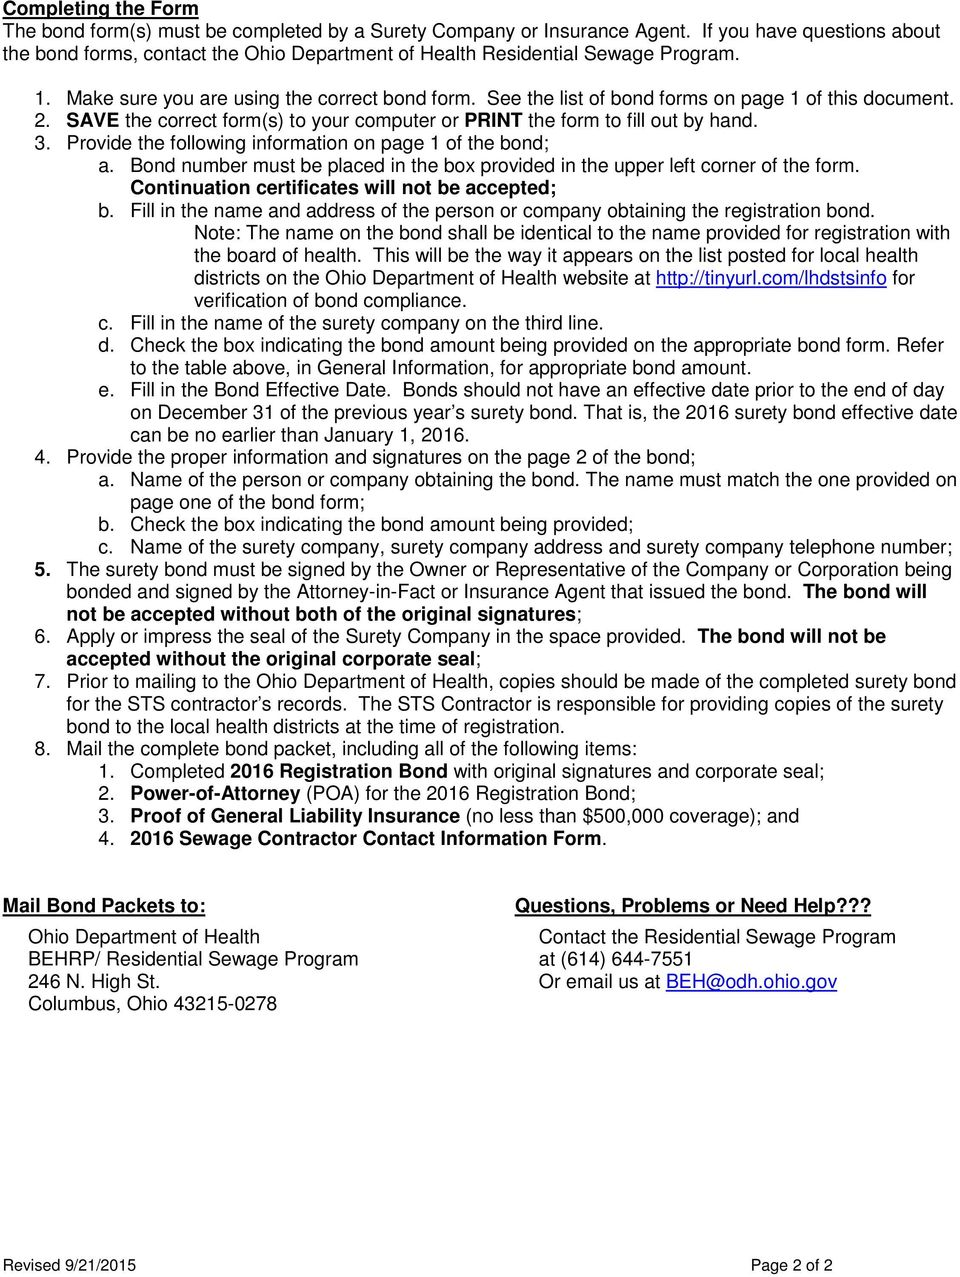 See the list of bond forms on page 1 of this document. 2. SAVE the correct form(s) to your computer or PRINT the form to fill out by hand. 3.